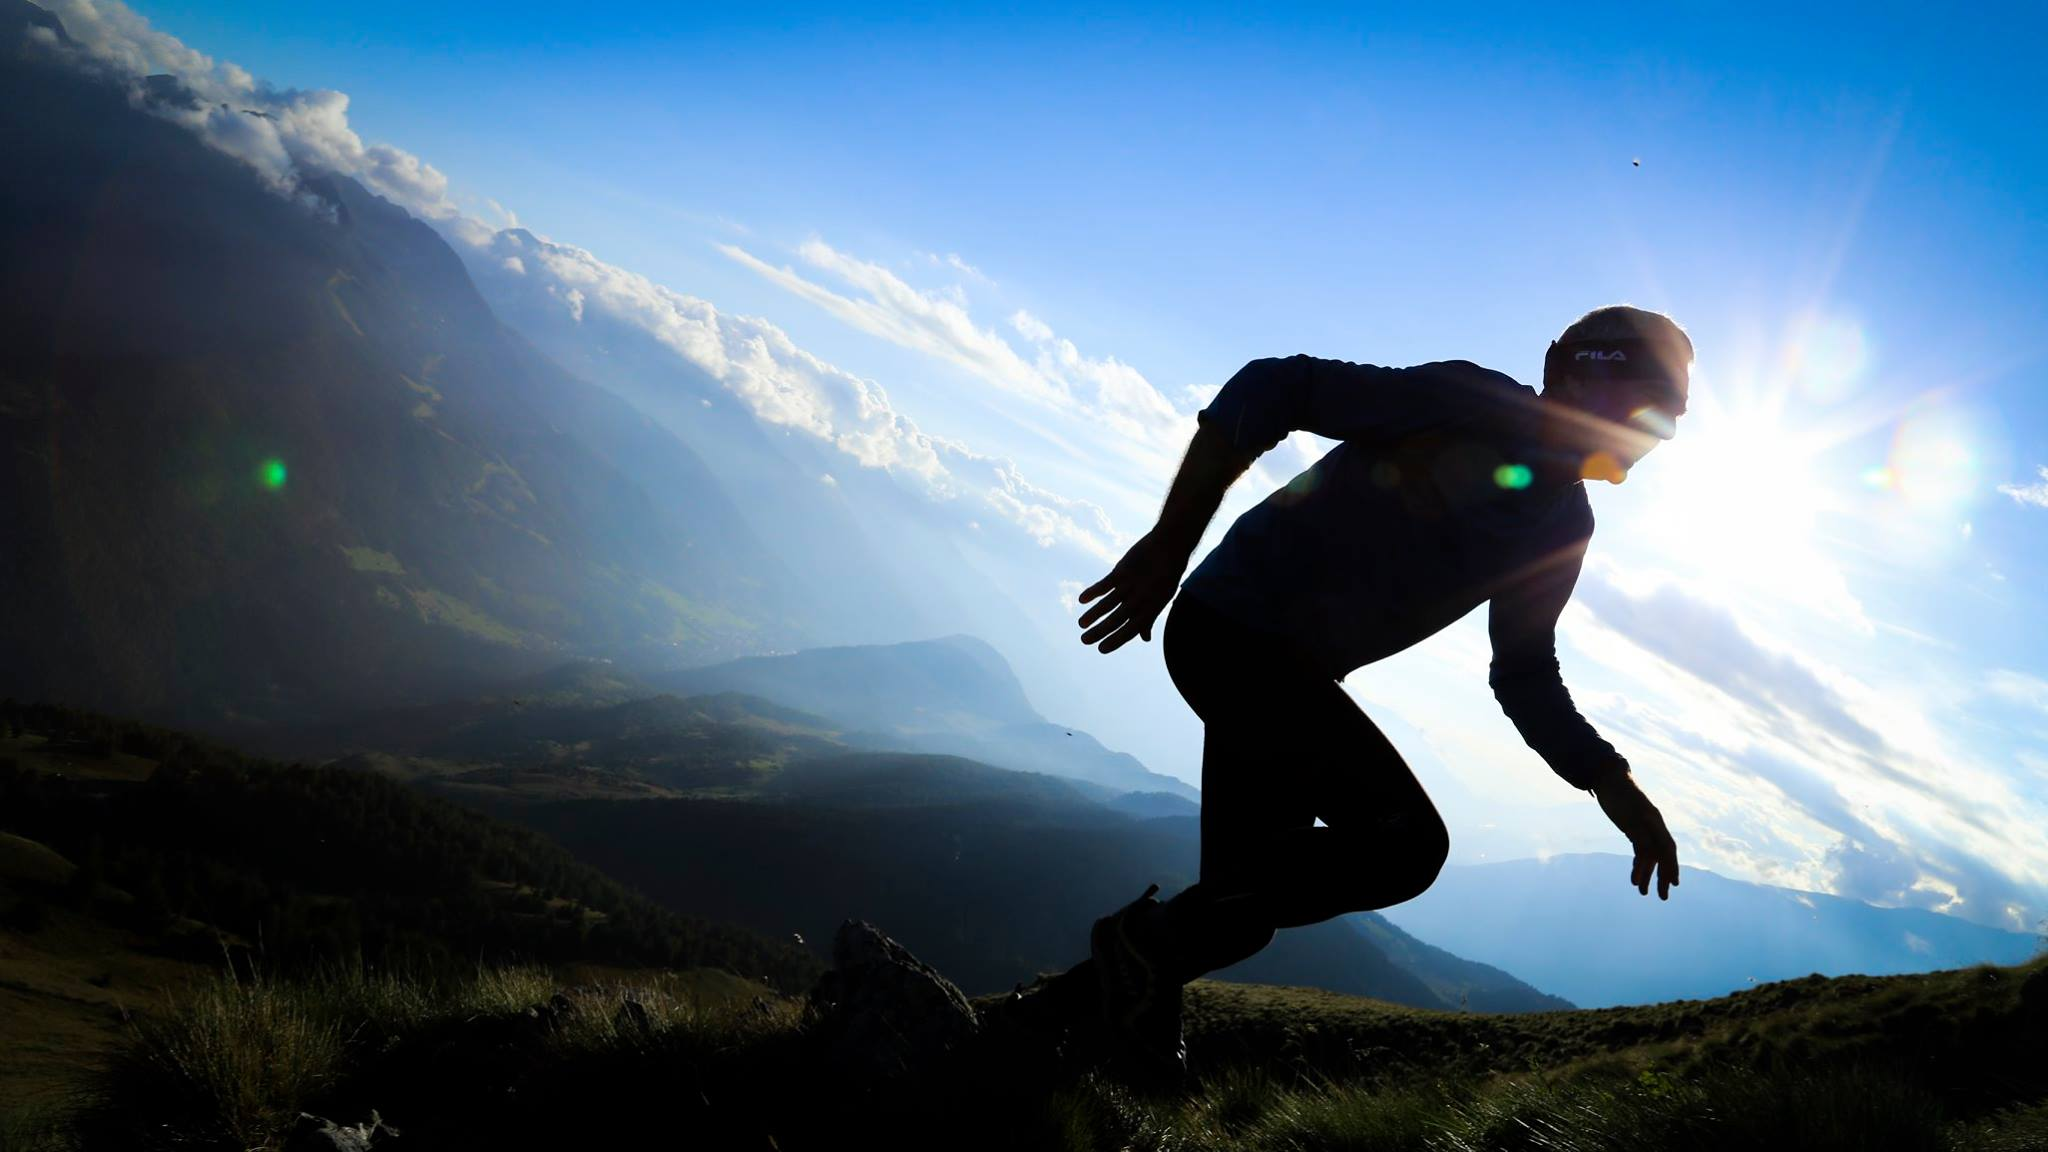 wallpaper skyrunning